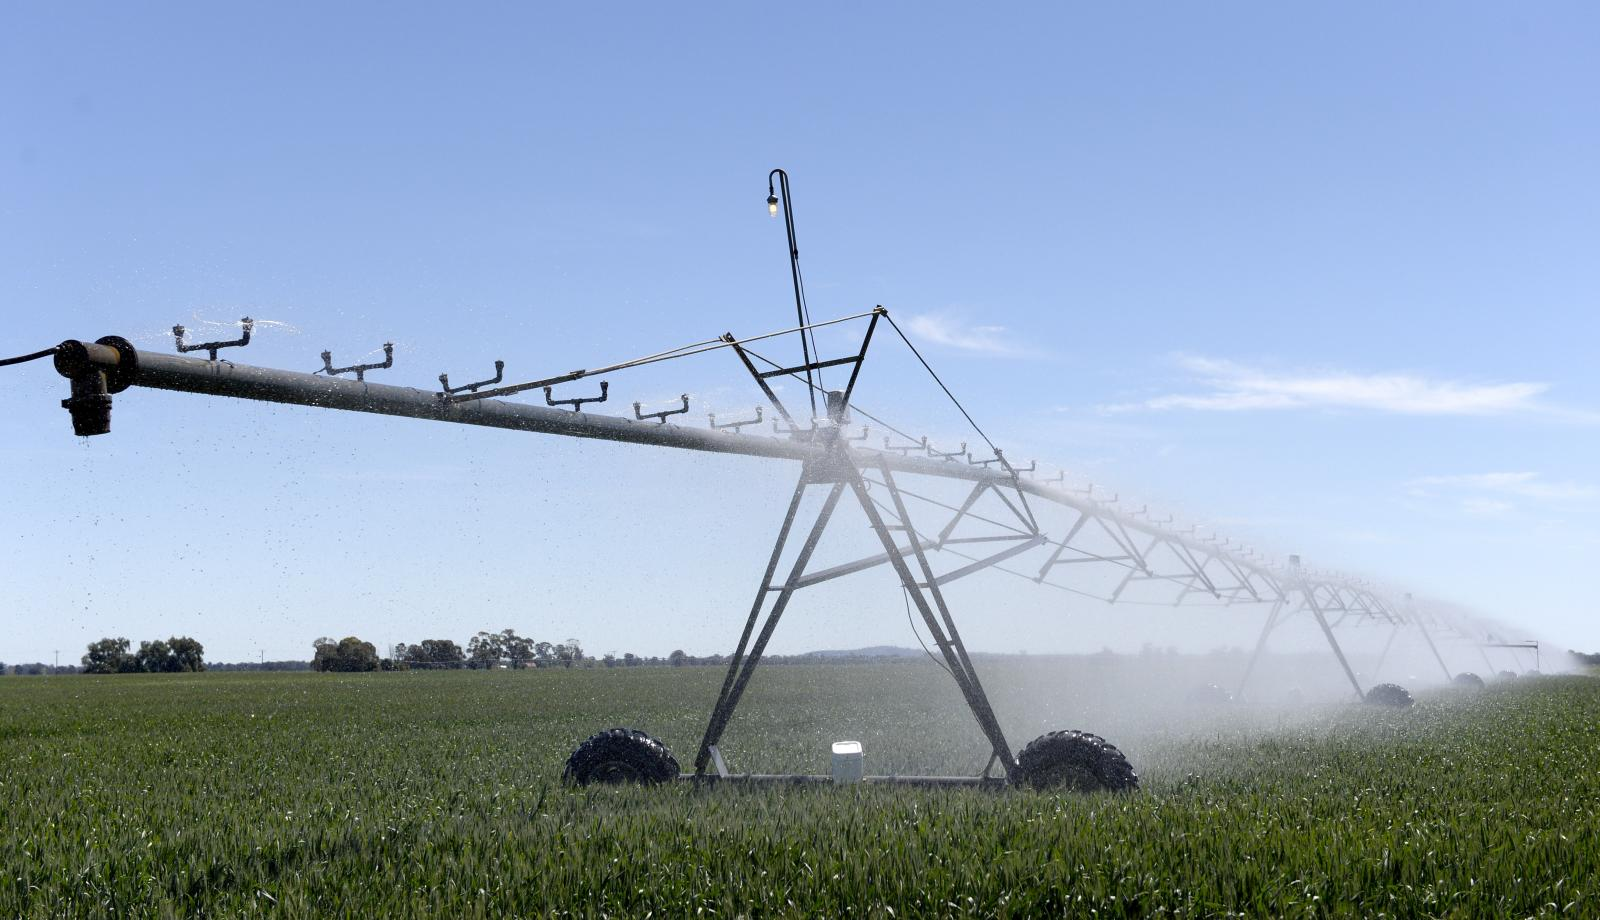 Irrigation table is back